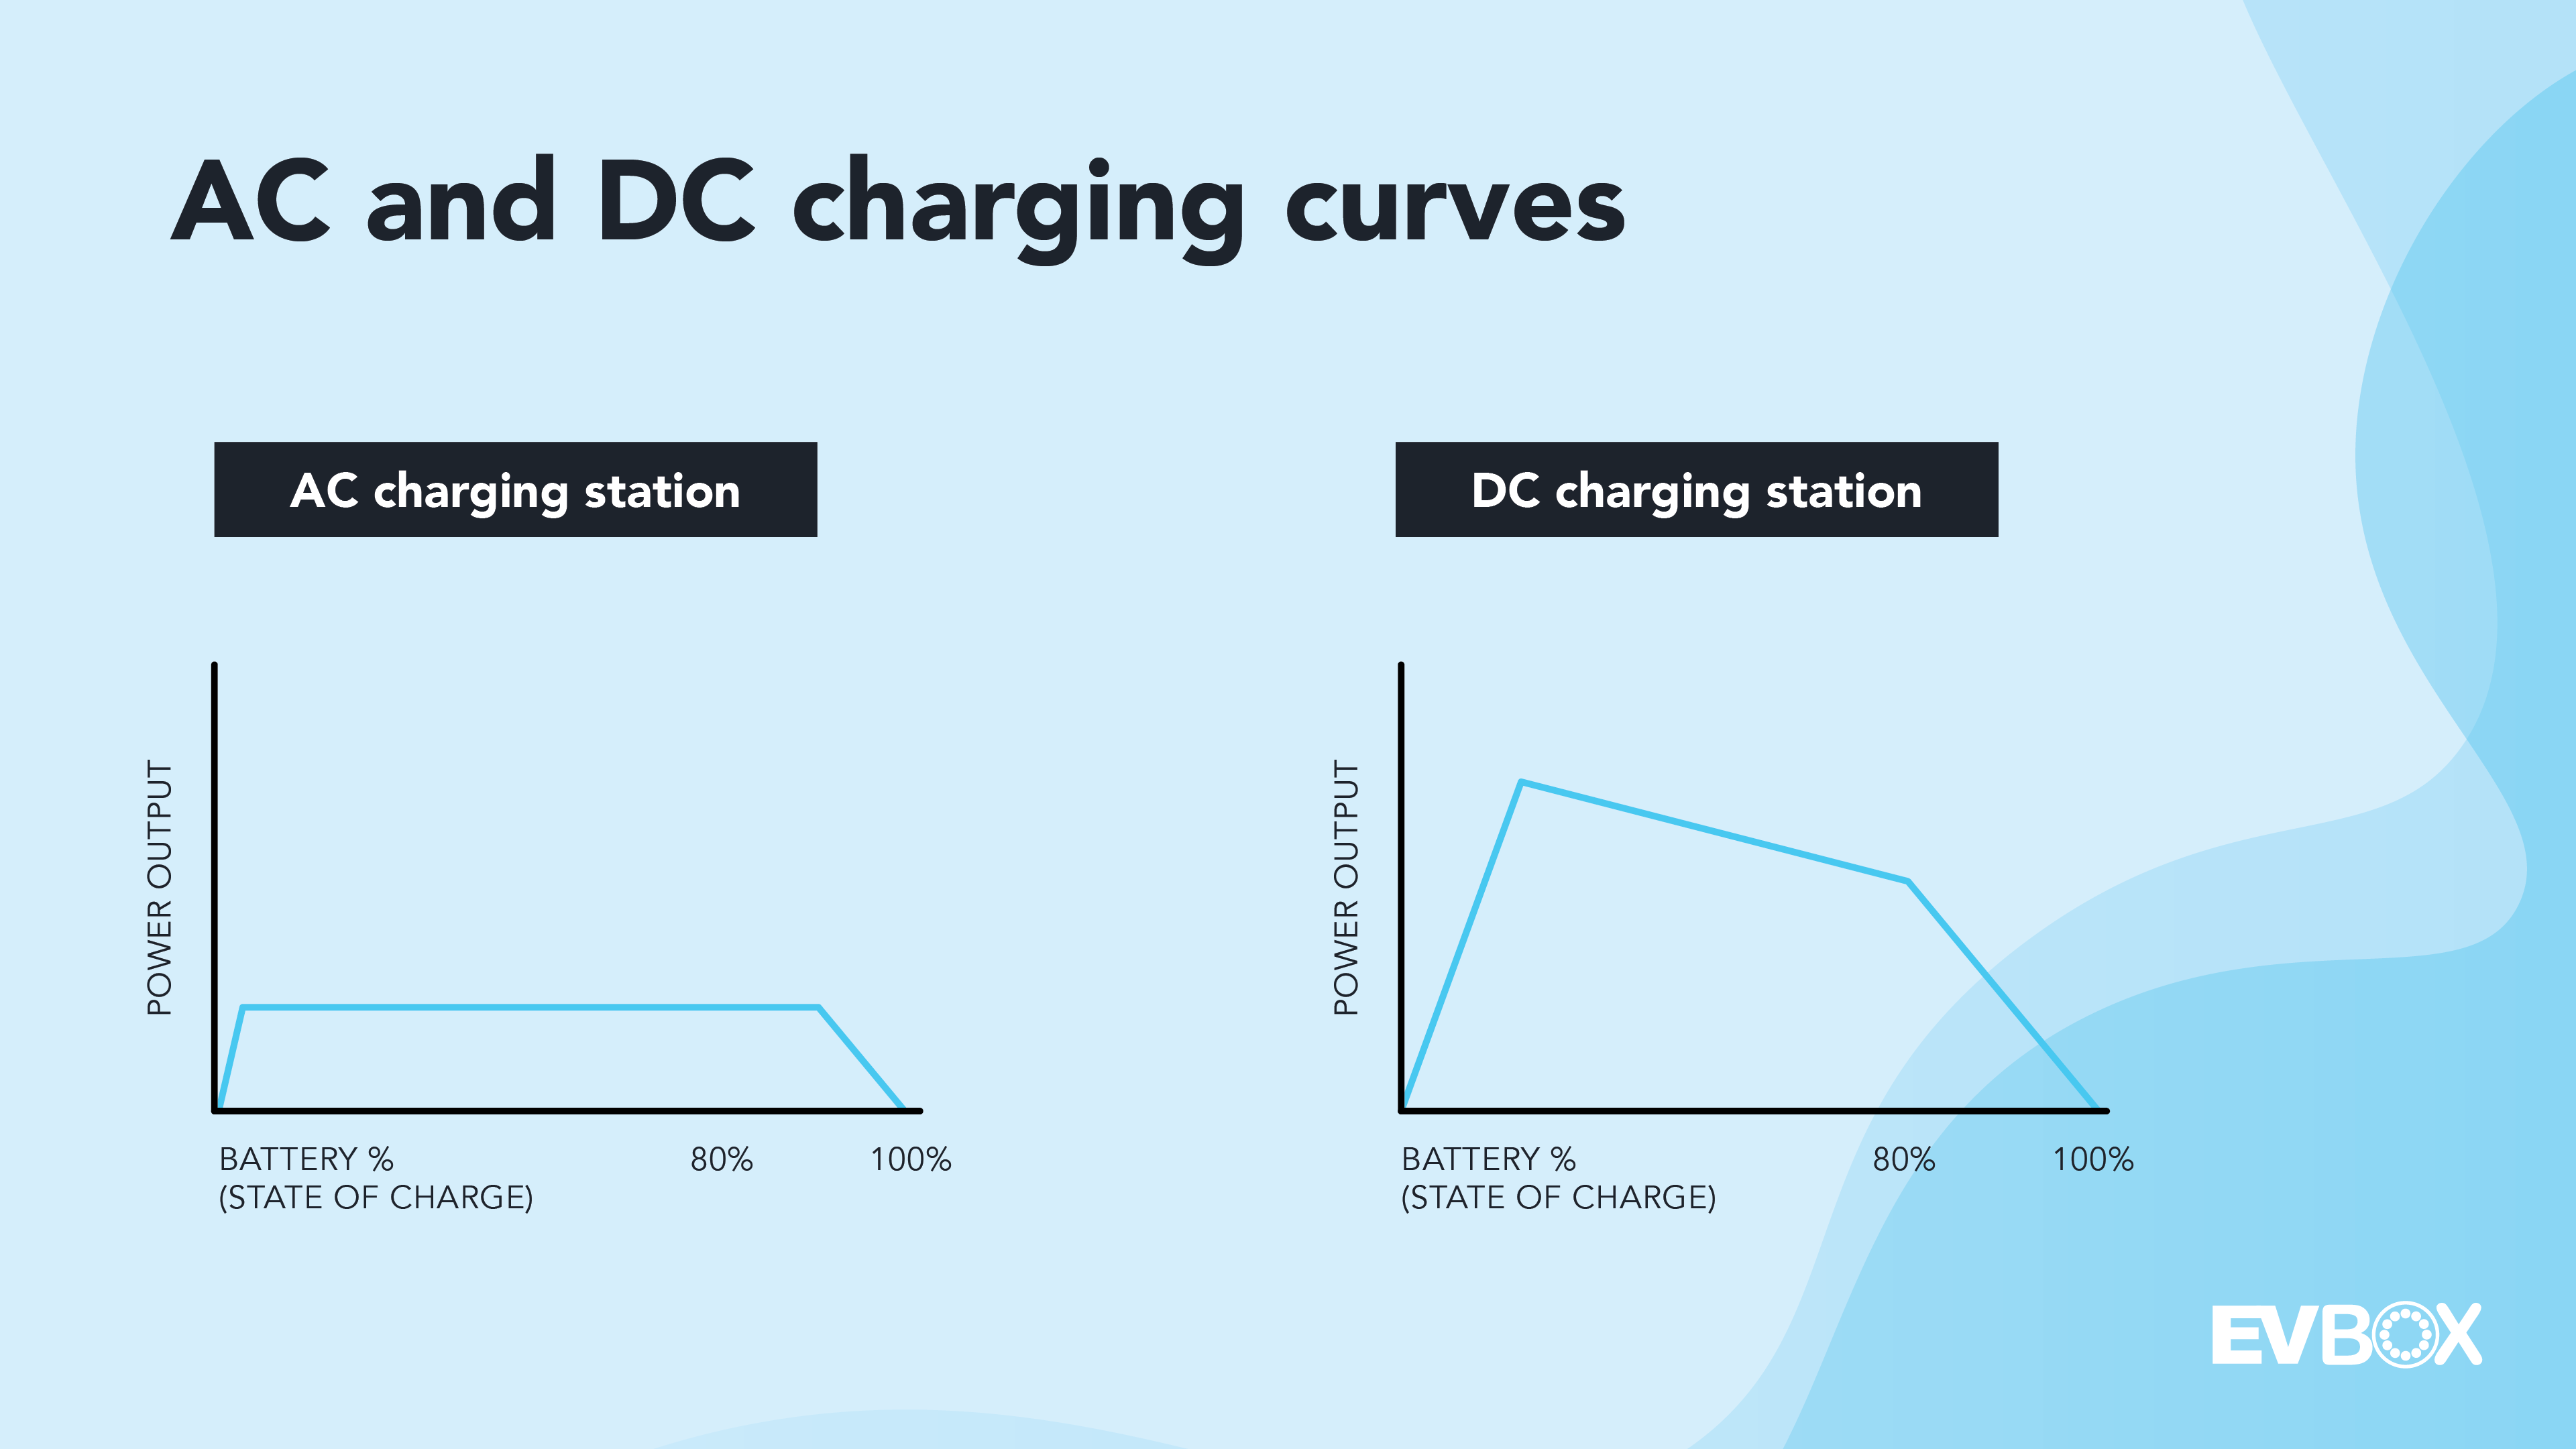 Two graphs showing the different charging curves of AC and DC. The first graph represents the curve of an AC charging station, It goes up rapidly, levels out quickly and moves in straight line before starting to decline near the end. The second graph represents the DC charging curve, showing a higher peak at the start of the charge, declining gradually on its way to roughly 80 percent where it starts to decline more.